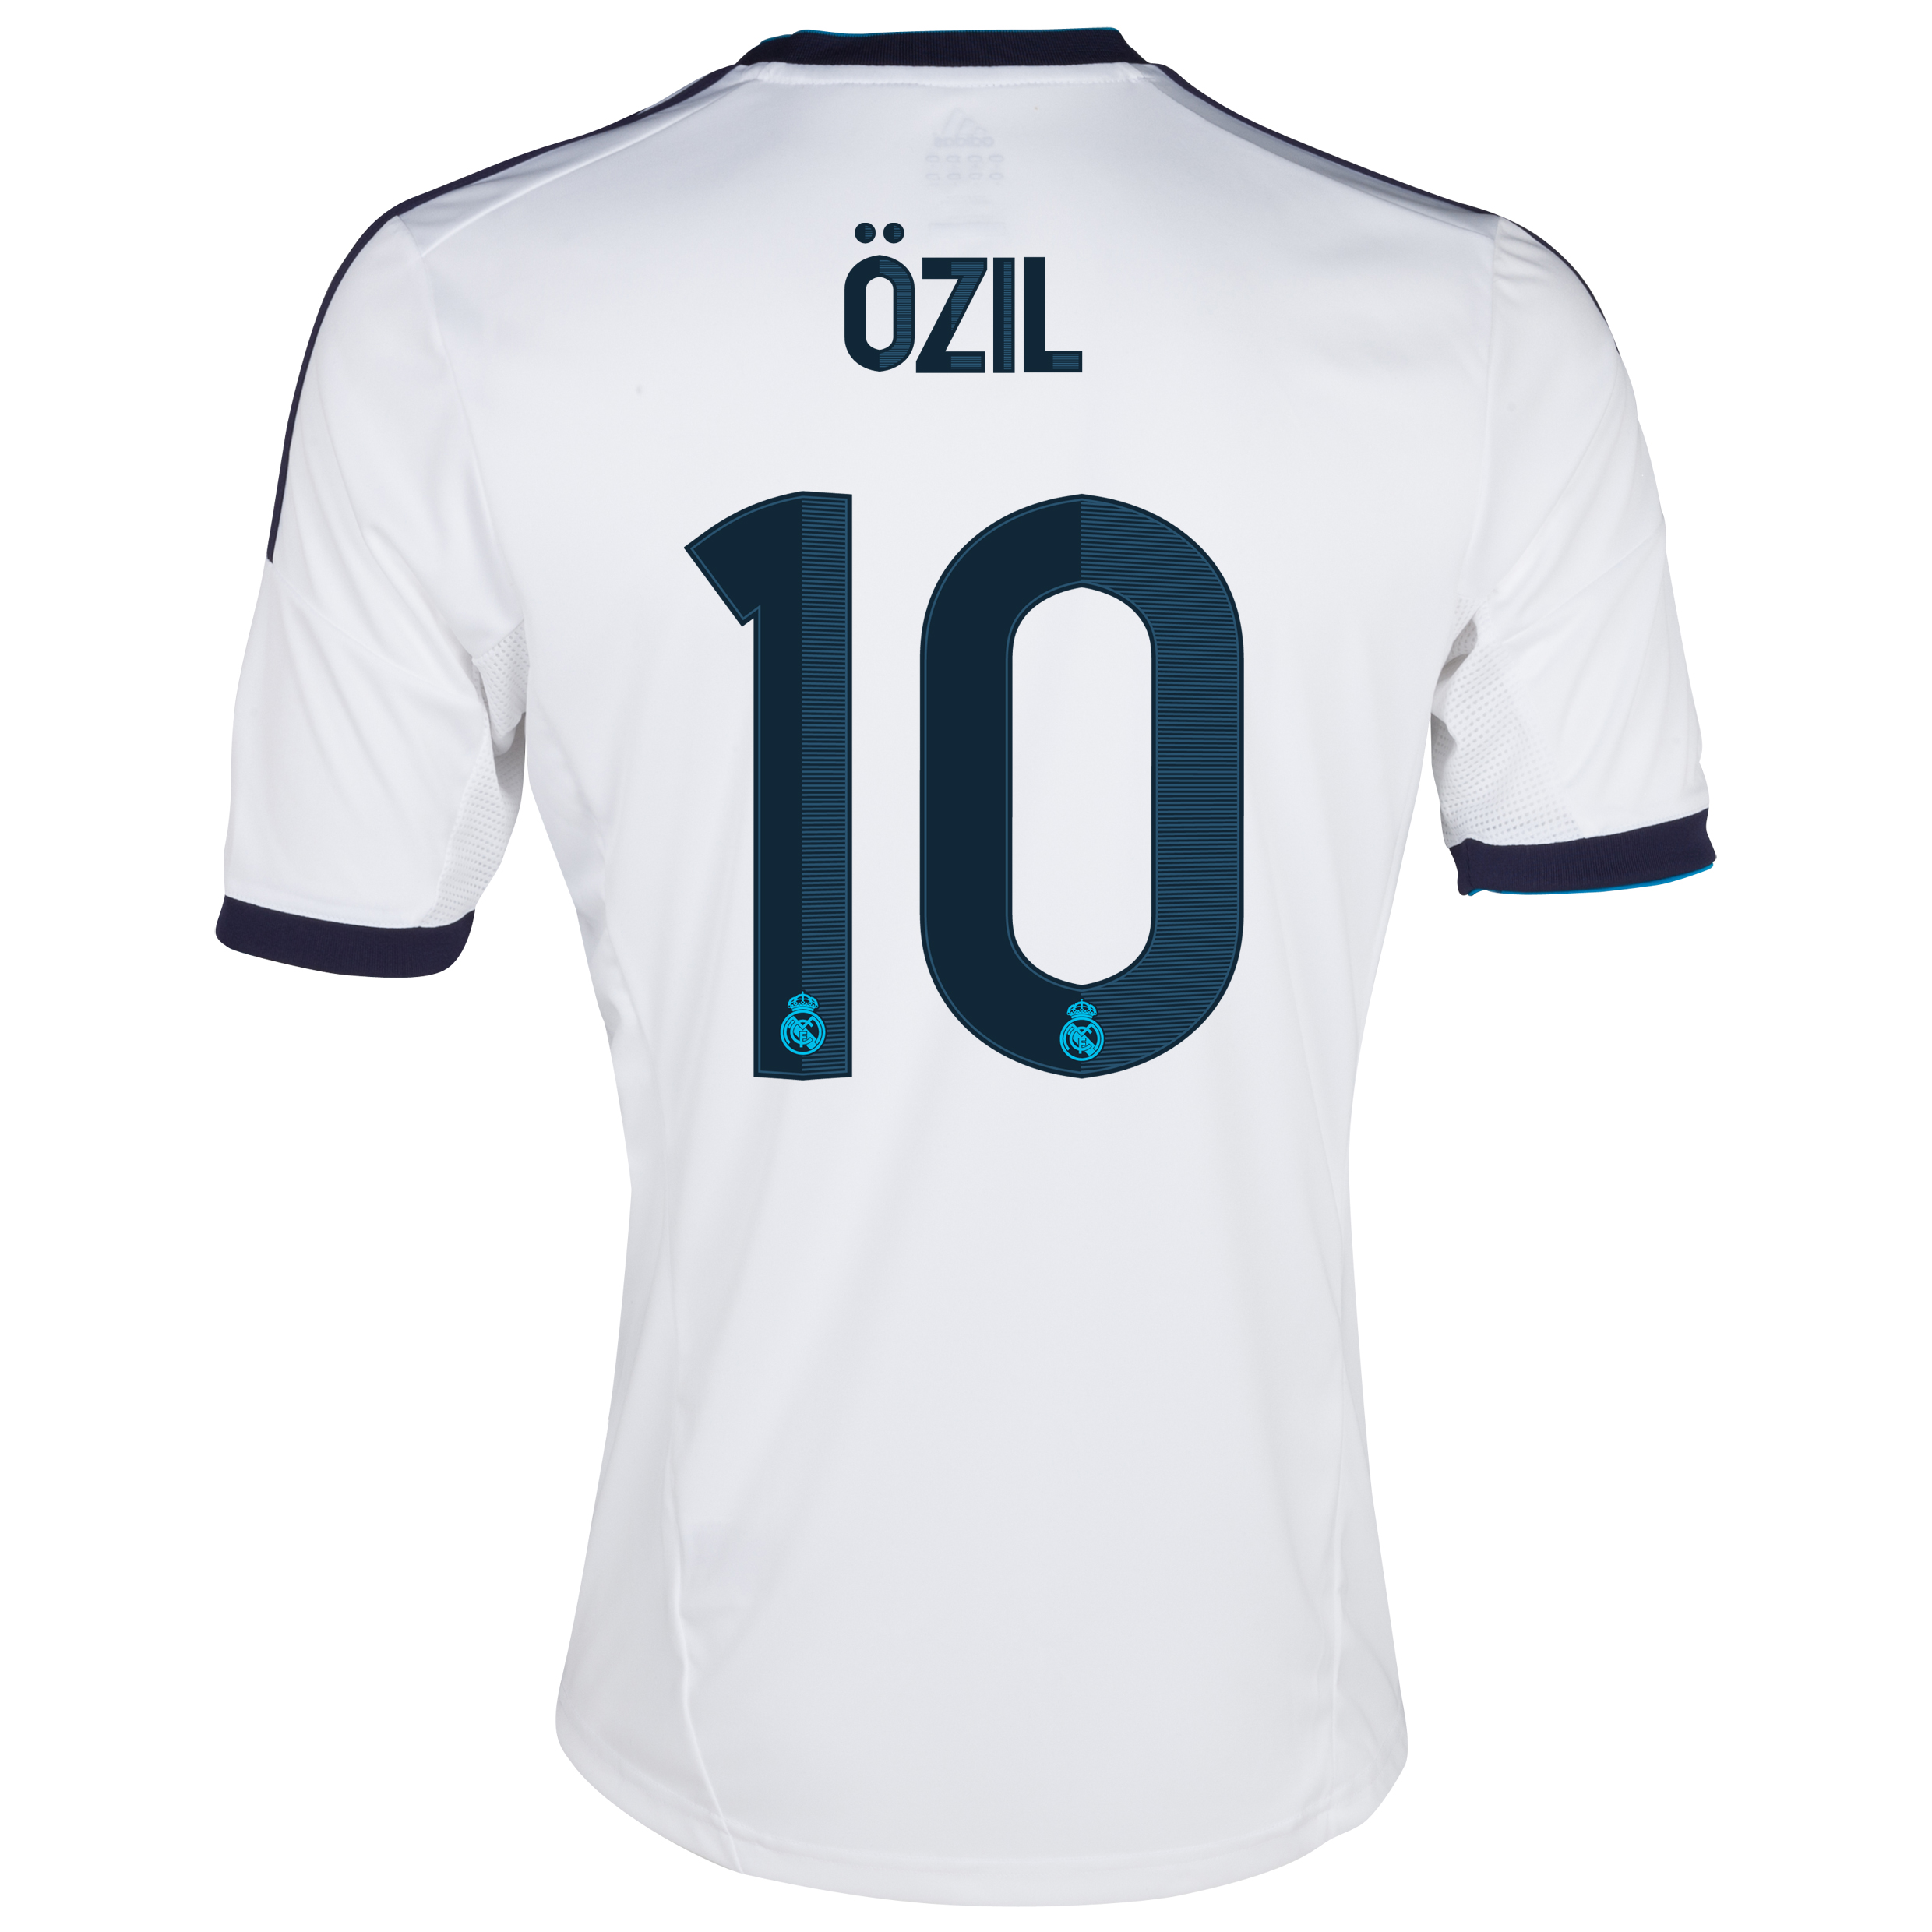 Real Madrid Home Shirt 2012/13 - Youths with Özil 10 printing